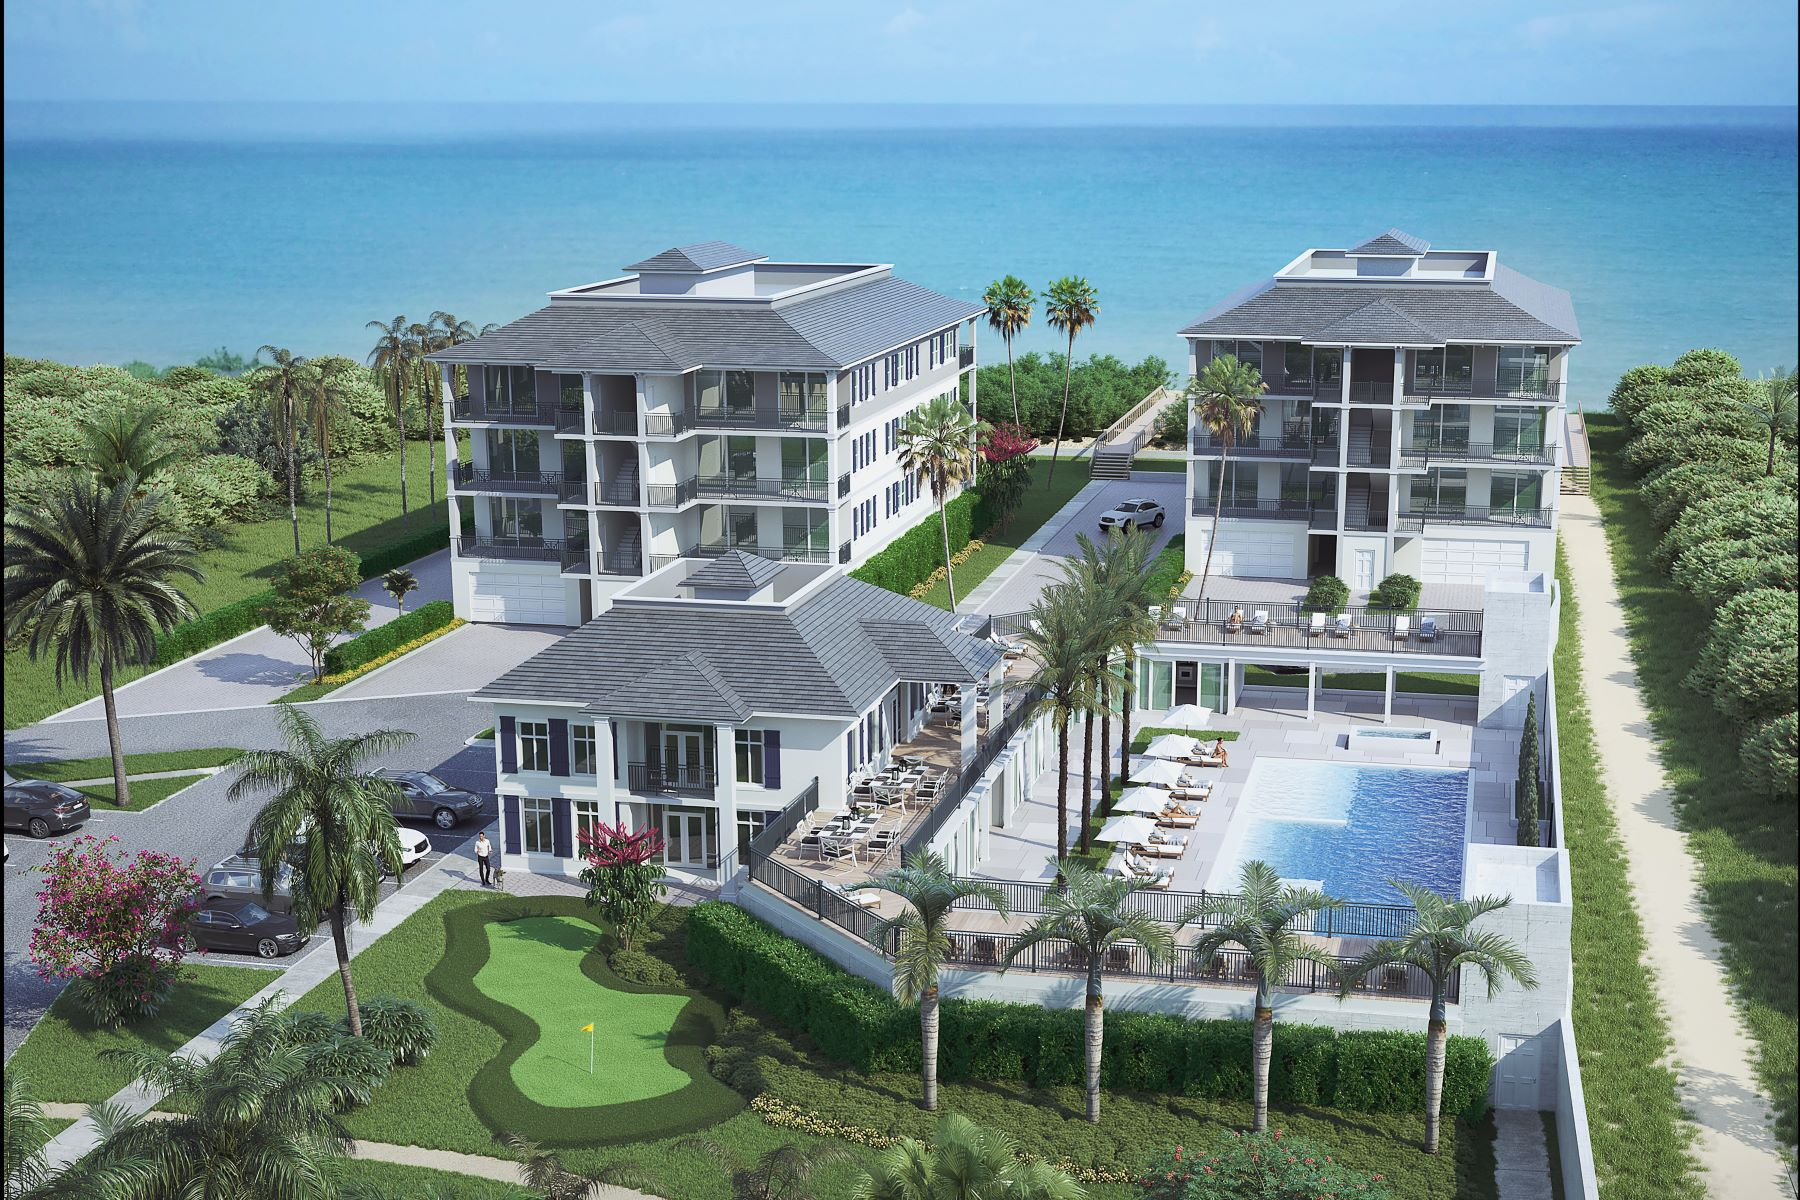 Property 용 매매 에 Blue at 8050 8050 Highway A1A Tower 2 401 Vero Beach, 플로리다 32963 미국